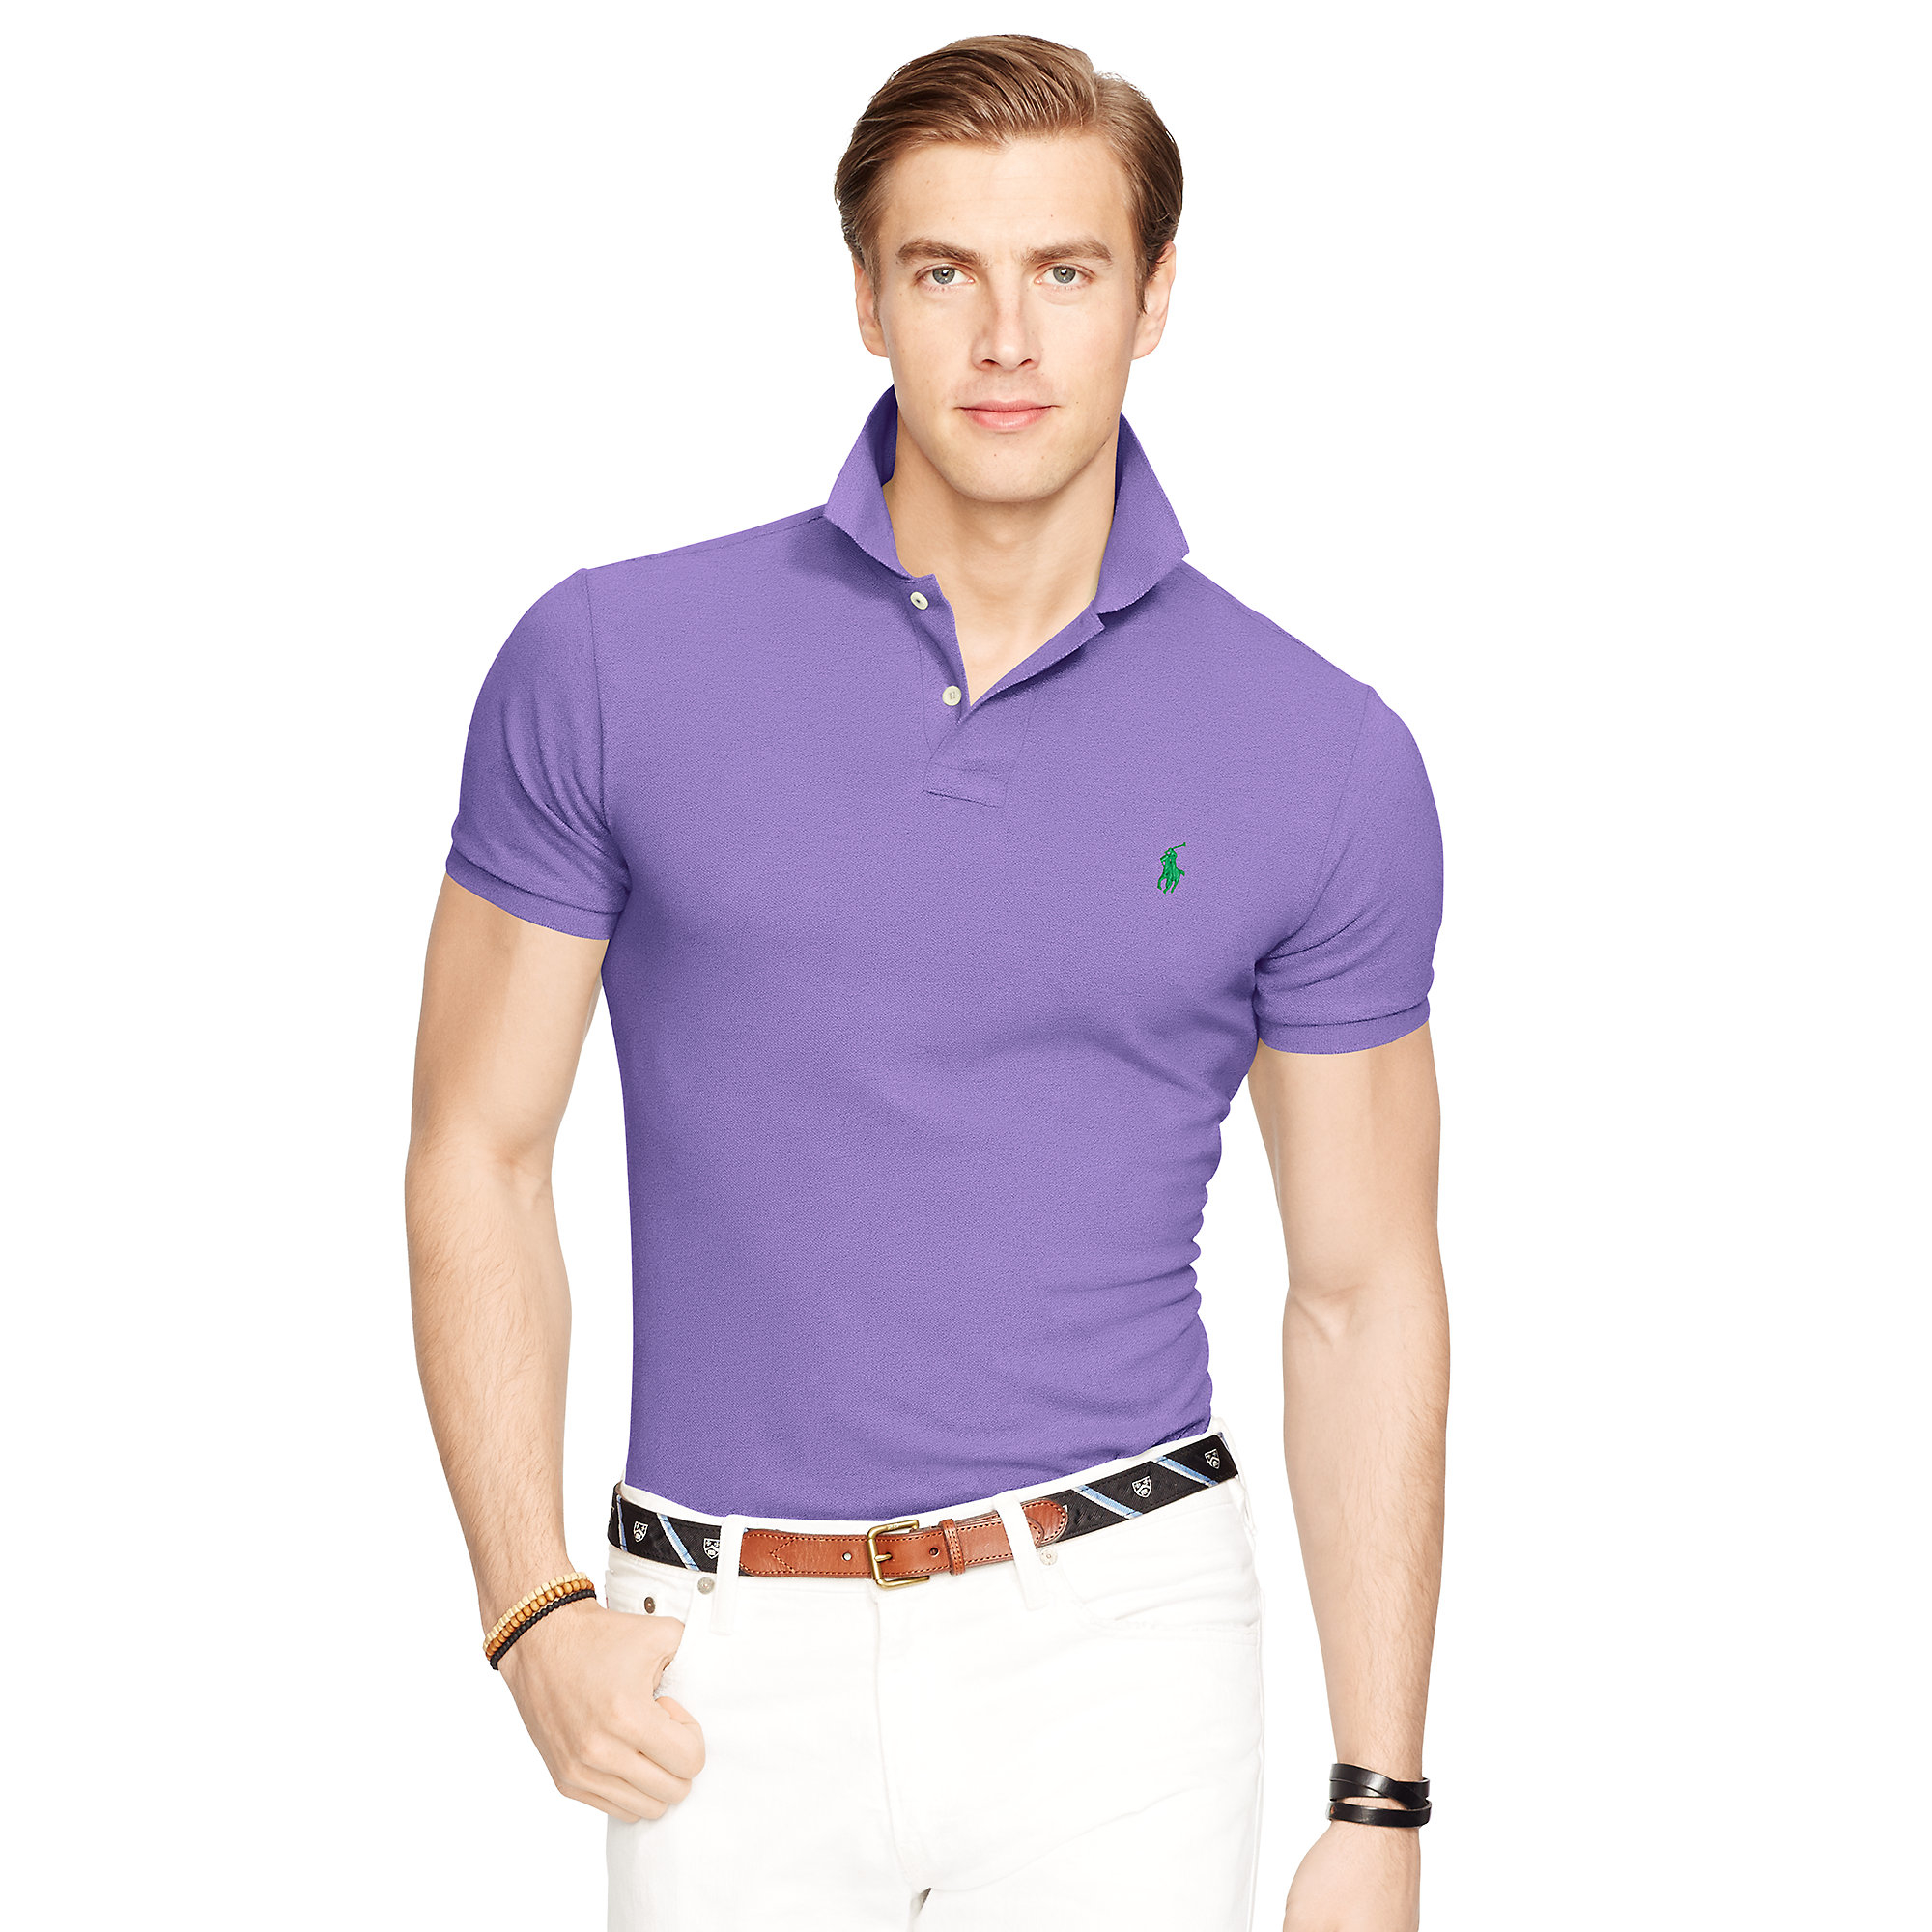 polo ralph lauren slim fit mesh polo shirt in purple for. Black Bedroom Furniture Sets. Home Design Ideas